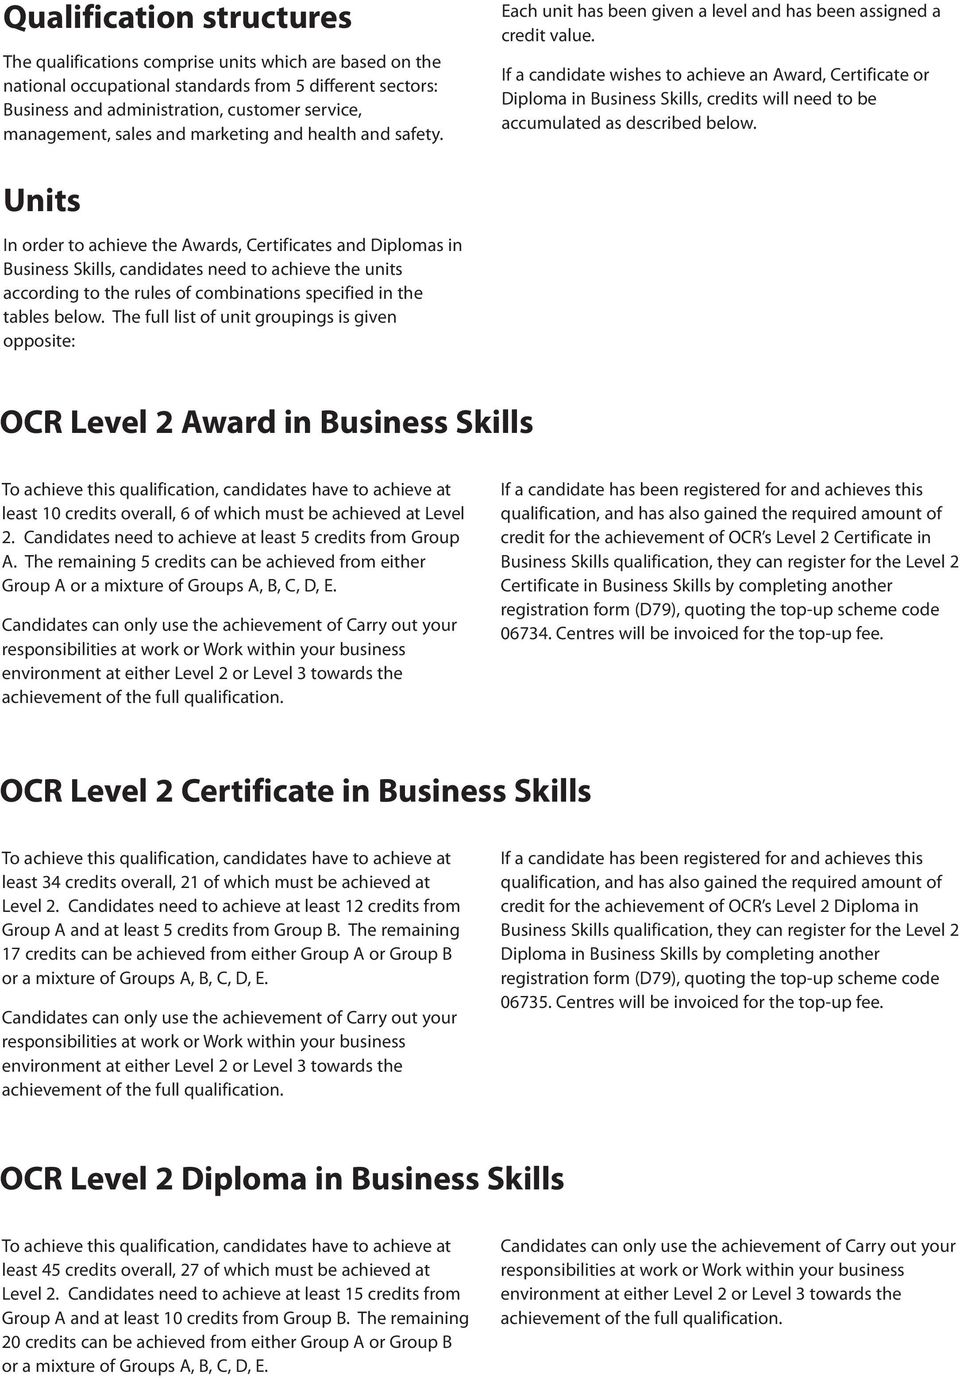 If a candidate wishes to achieve an Award, Certificate or Diploma in Business Skills, credits will need to be accumulated as described below.